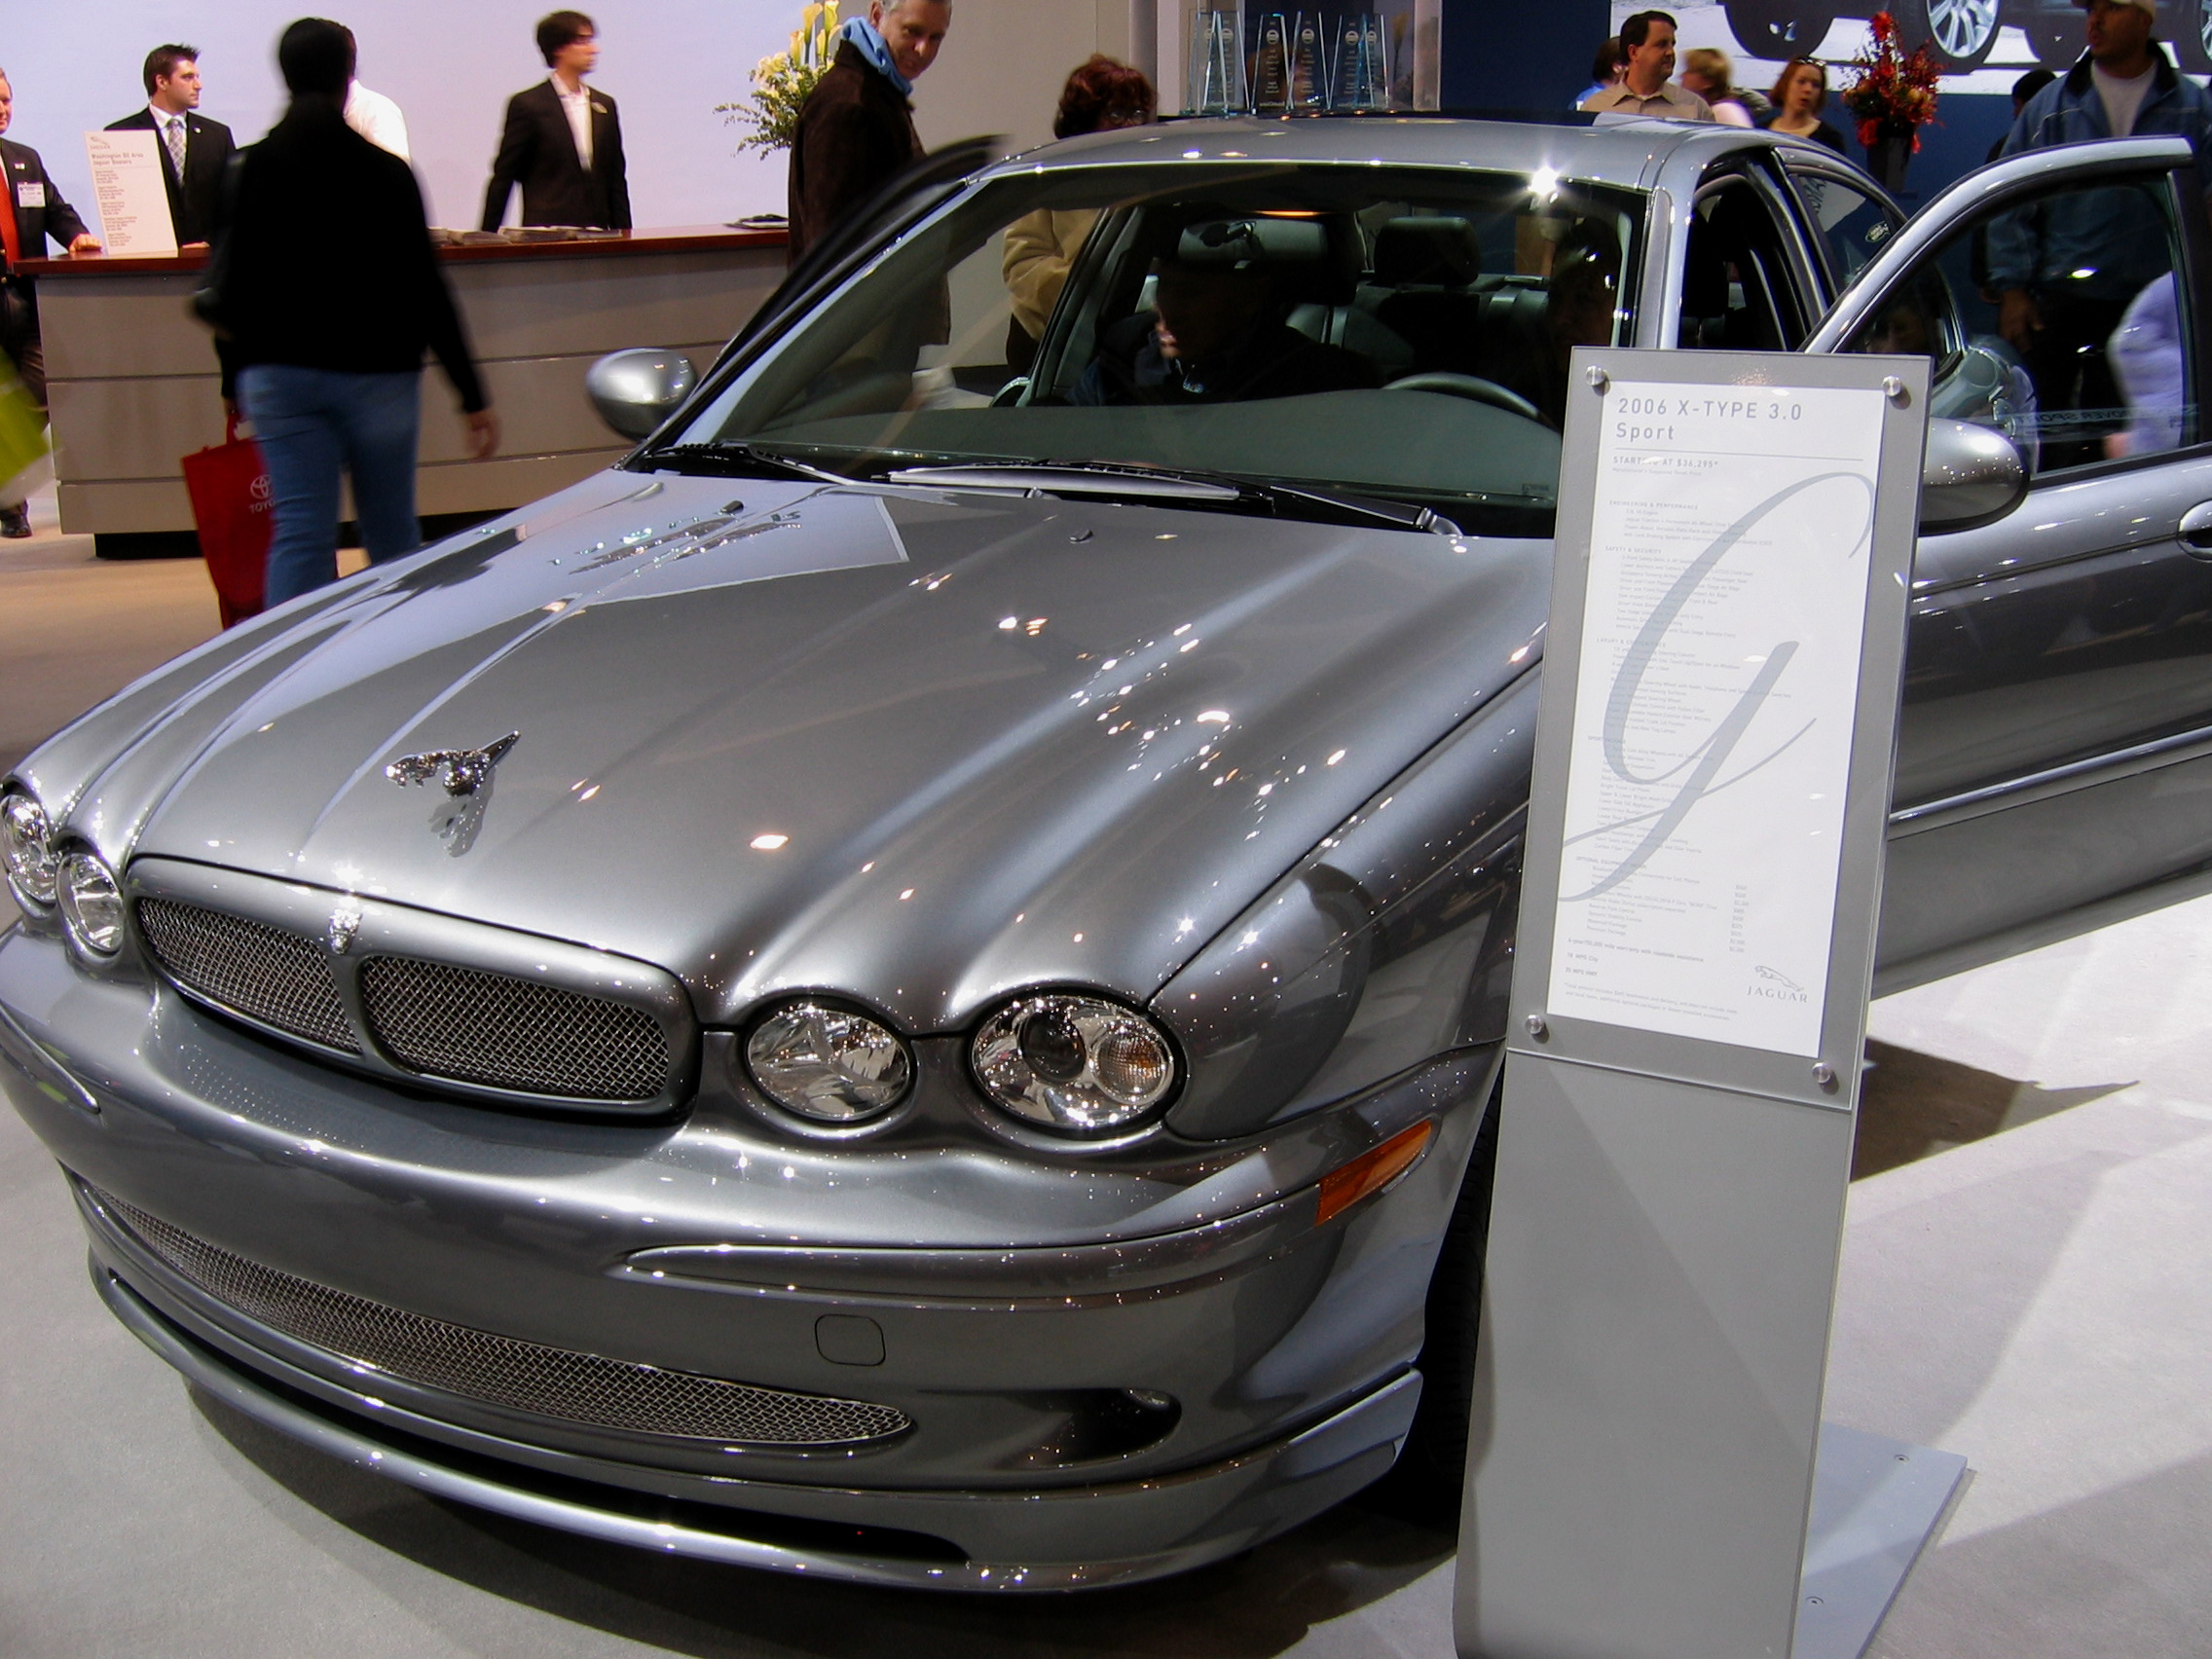 File:Washauto06 Jaguar X Type